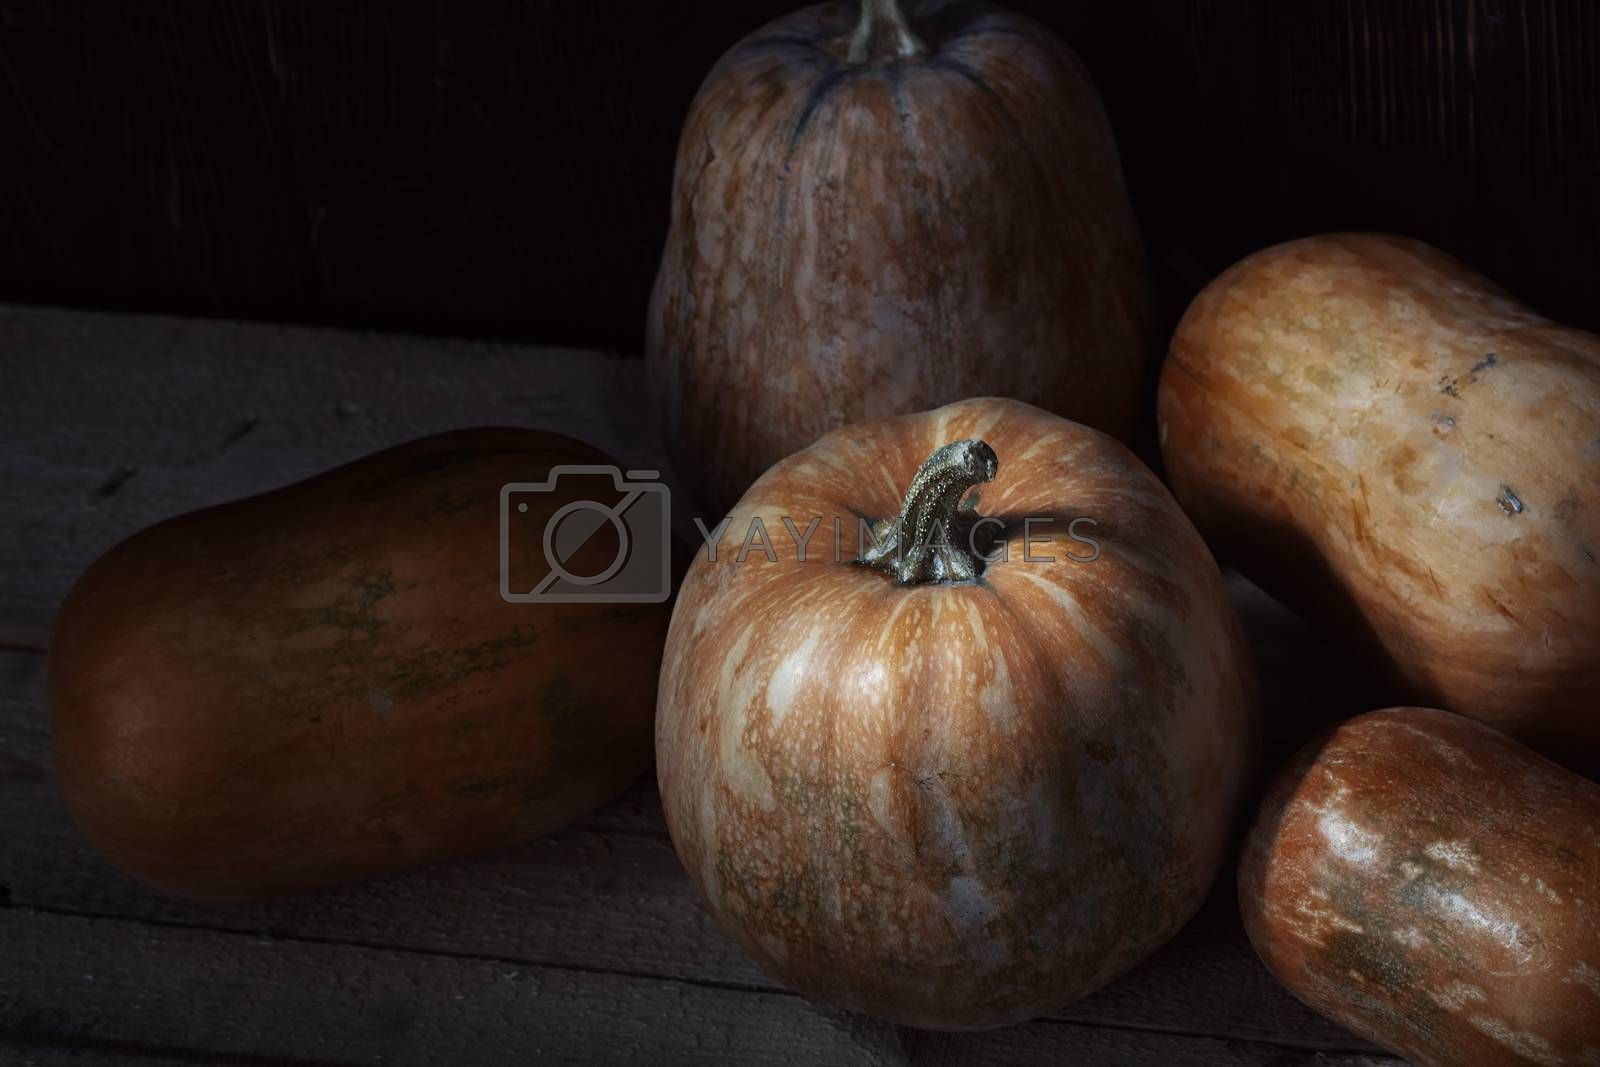 Group of pumpkins on a wooden table by Novic